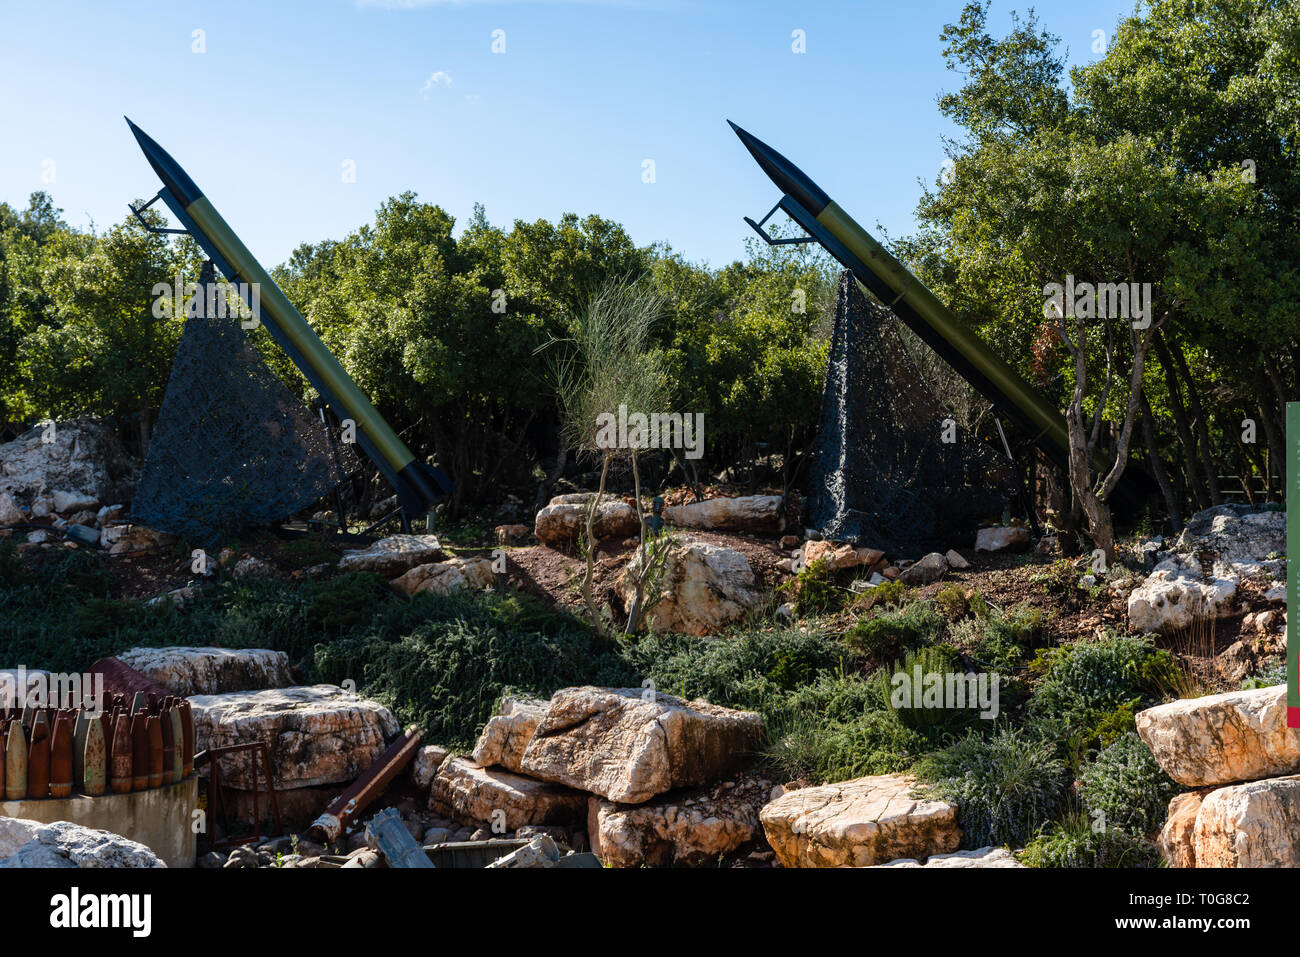 MLEETA, LEBANON - 4 Jan 2019: The Mleeta tourist Memorial (Hezbollah Museum), is a landmark build from the conflict military equipment after the leban - Stock Image